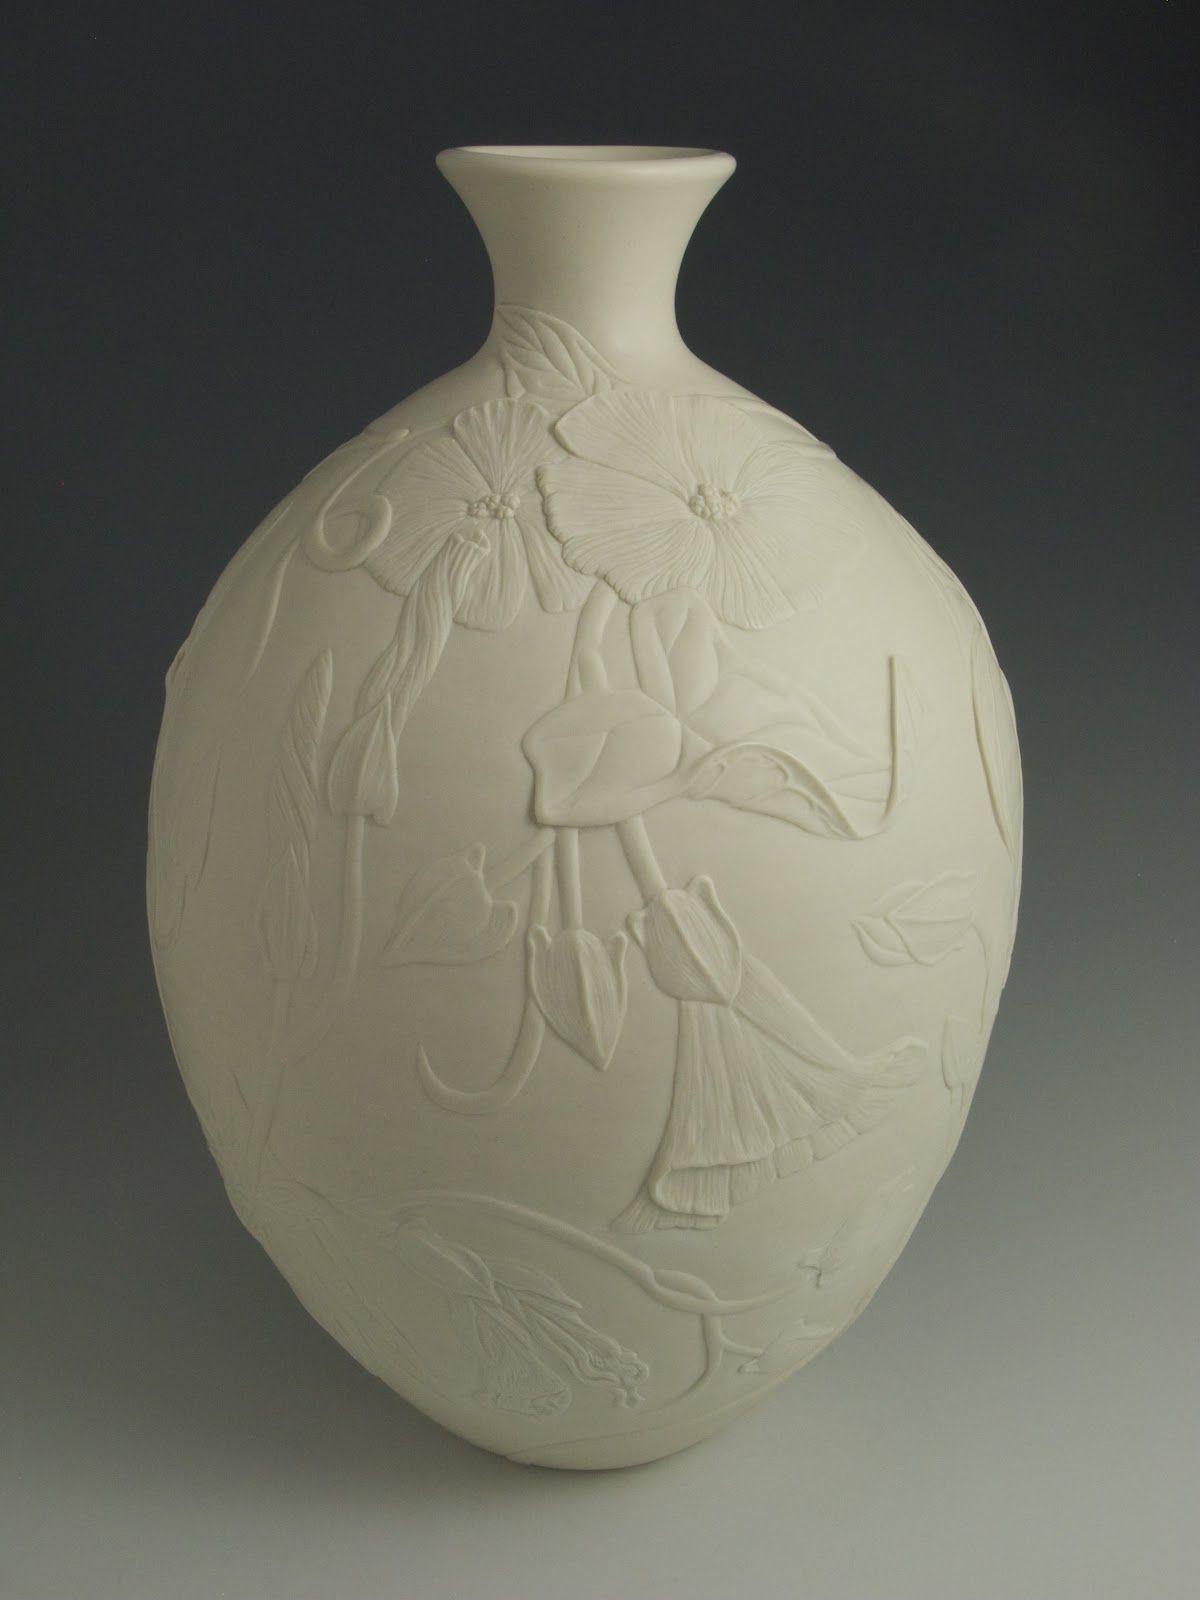 Tiffany Tulip Vase Of Pin by G N On Ceramics and Pottery Pinterest Porcelain Pottery with Porcelain Vase Flower Vases China Jar